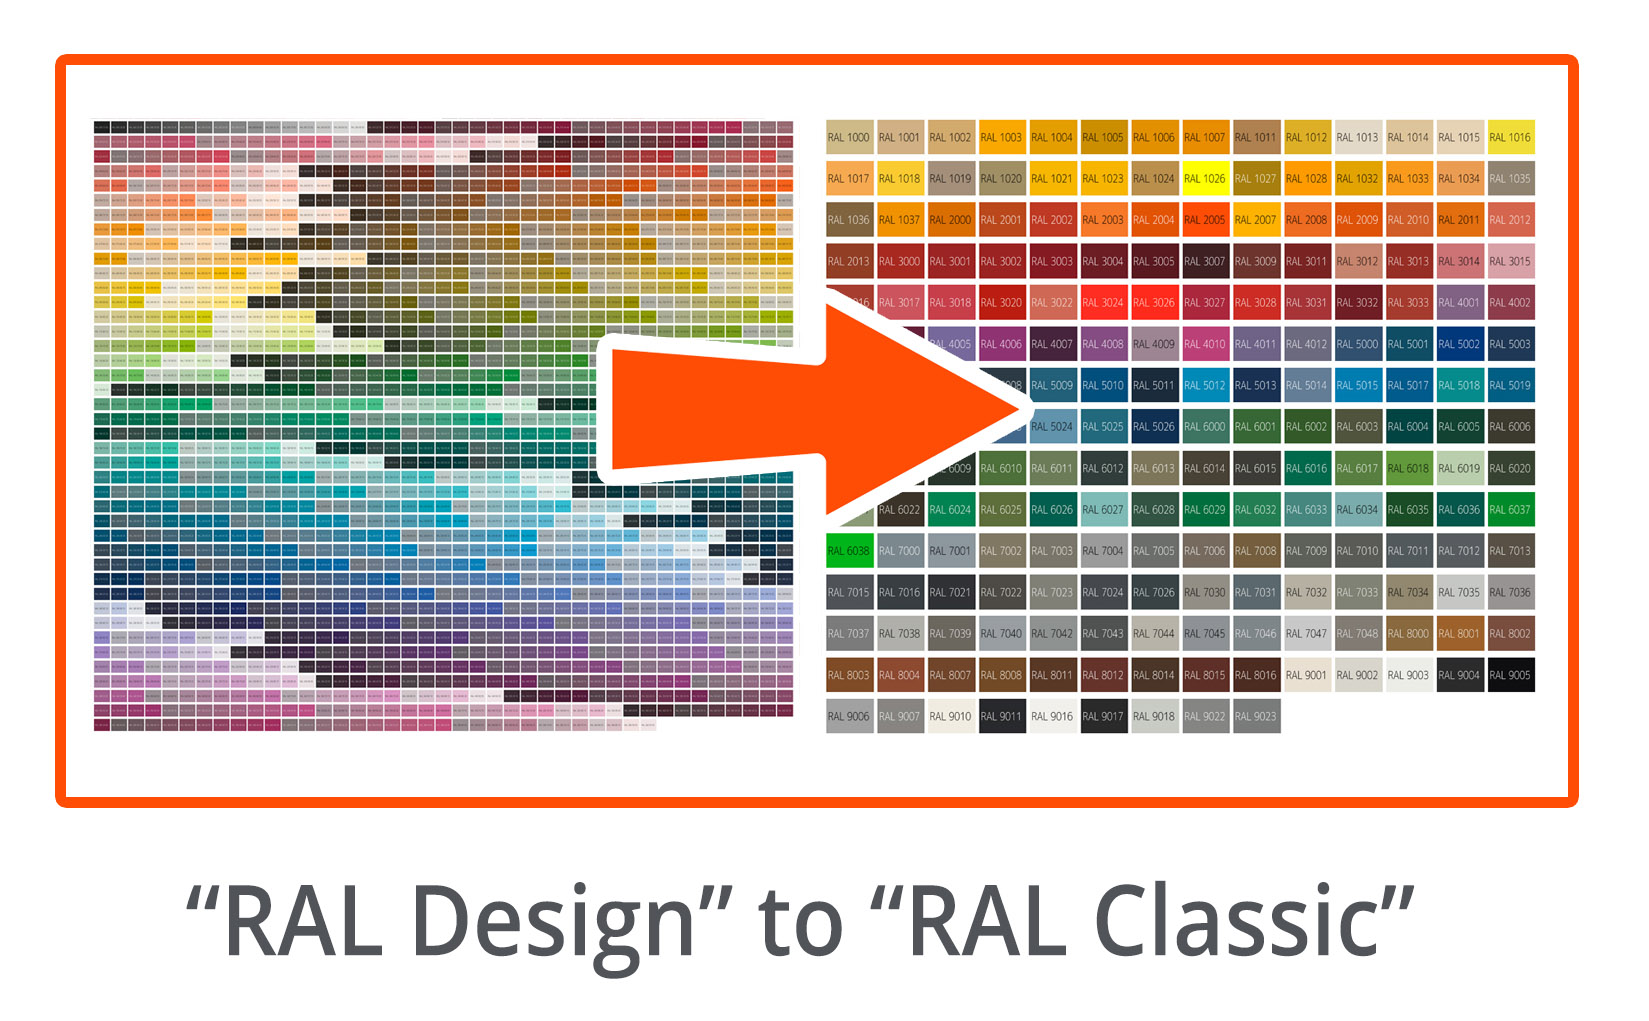 RAL Design to RAL Classic